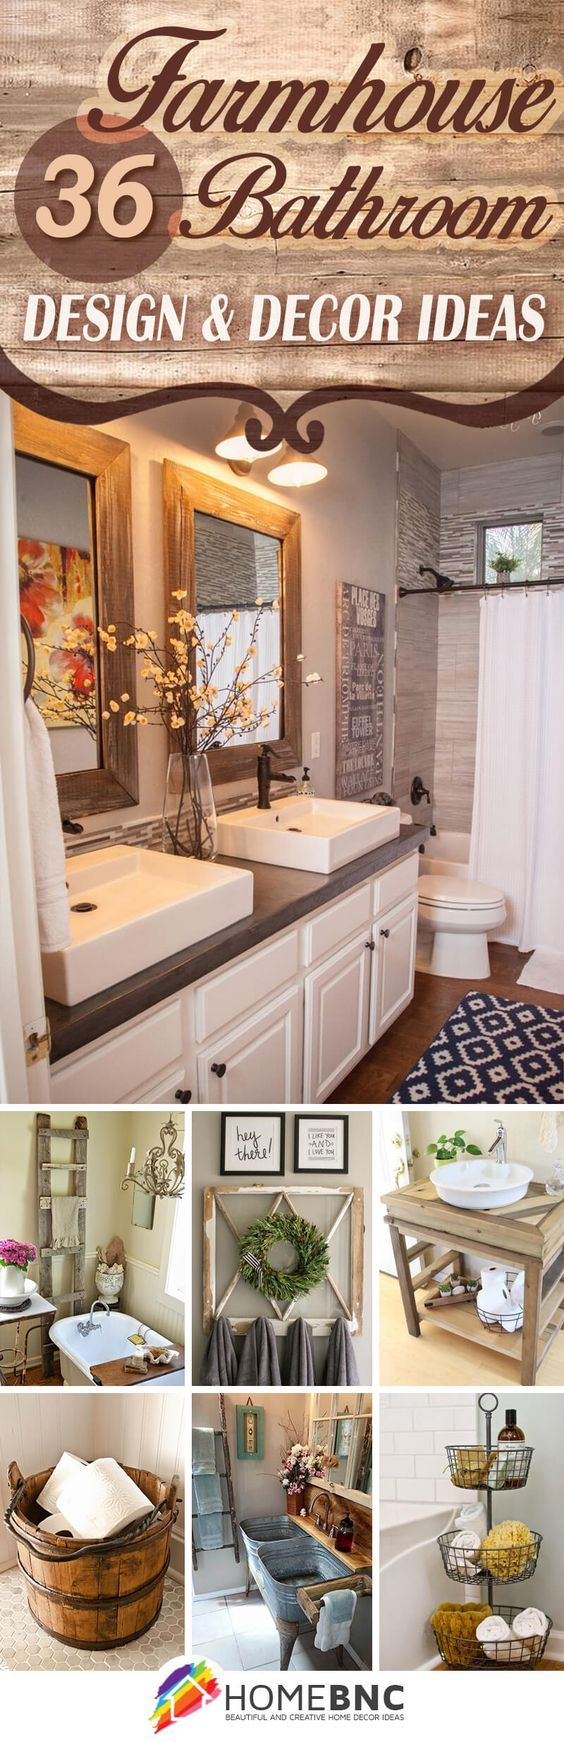 36 Beautiful Farmhouse Bathroom Design And Decor Ideas You Will Go Crazy For Small Bathroom Mirrorsbathrooms